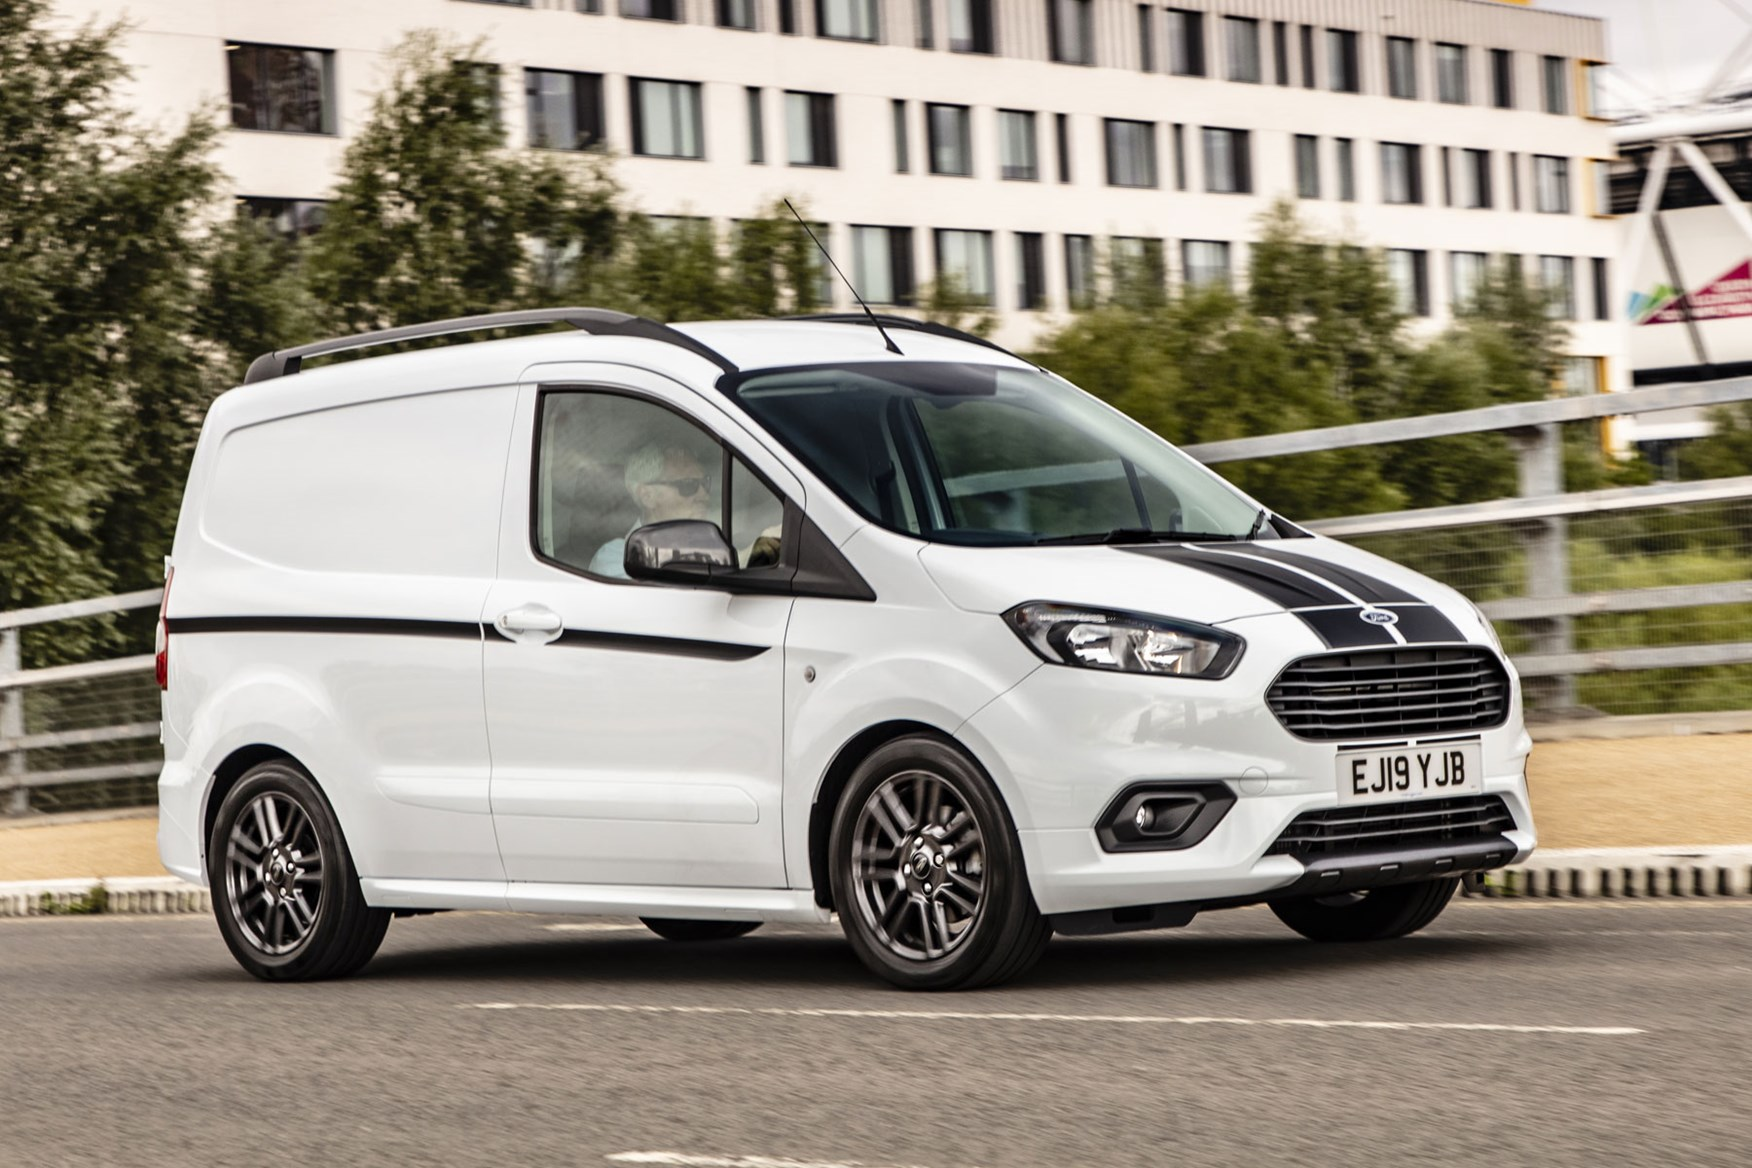 Ford Transit Courier Sport review - 1.5-litre EcoBlue 100hp model, 2019, white, front view, driving